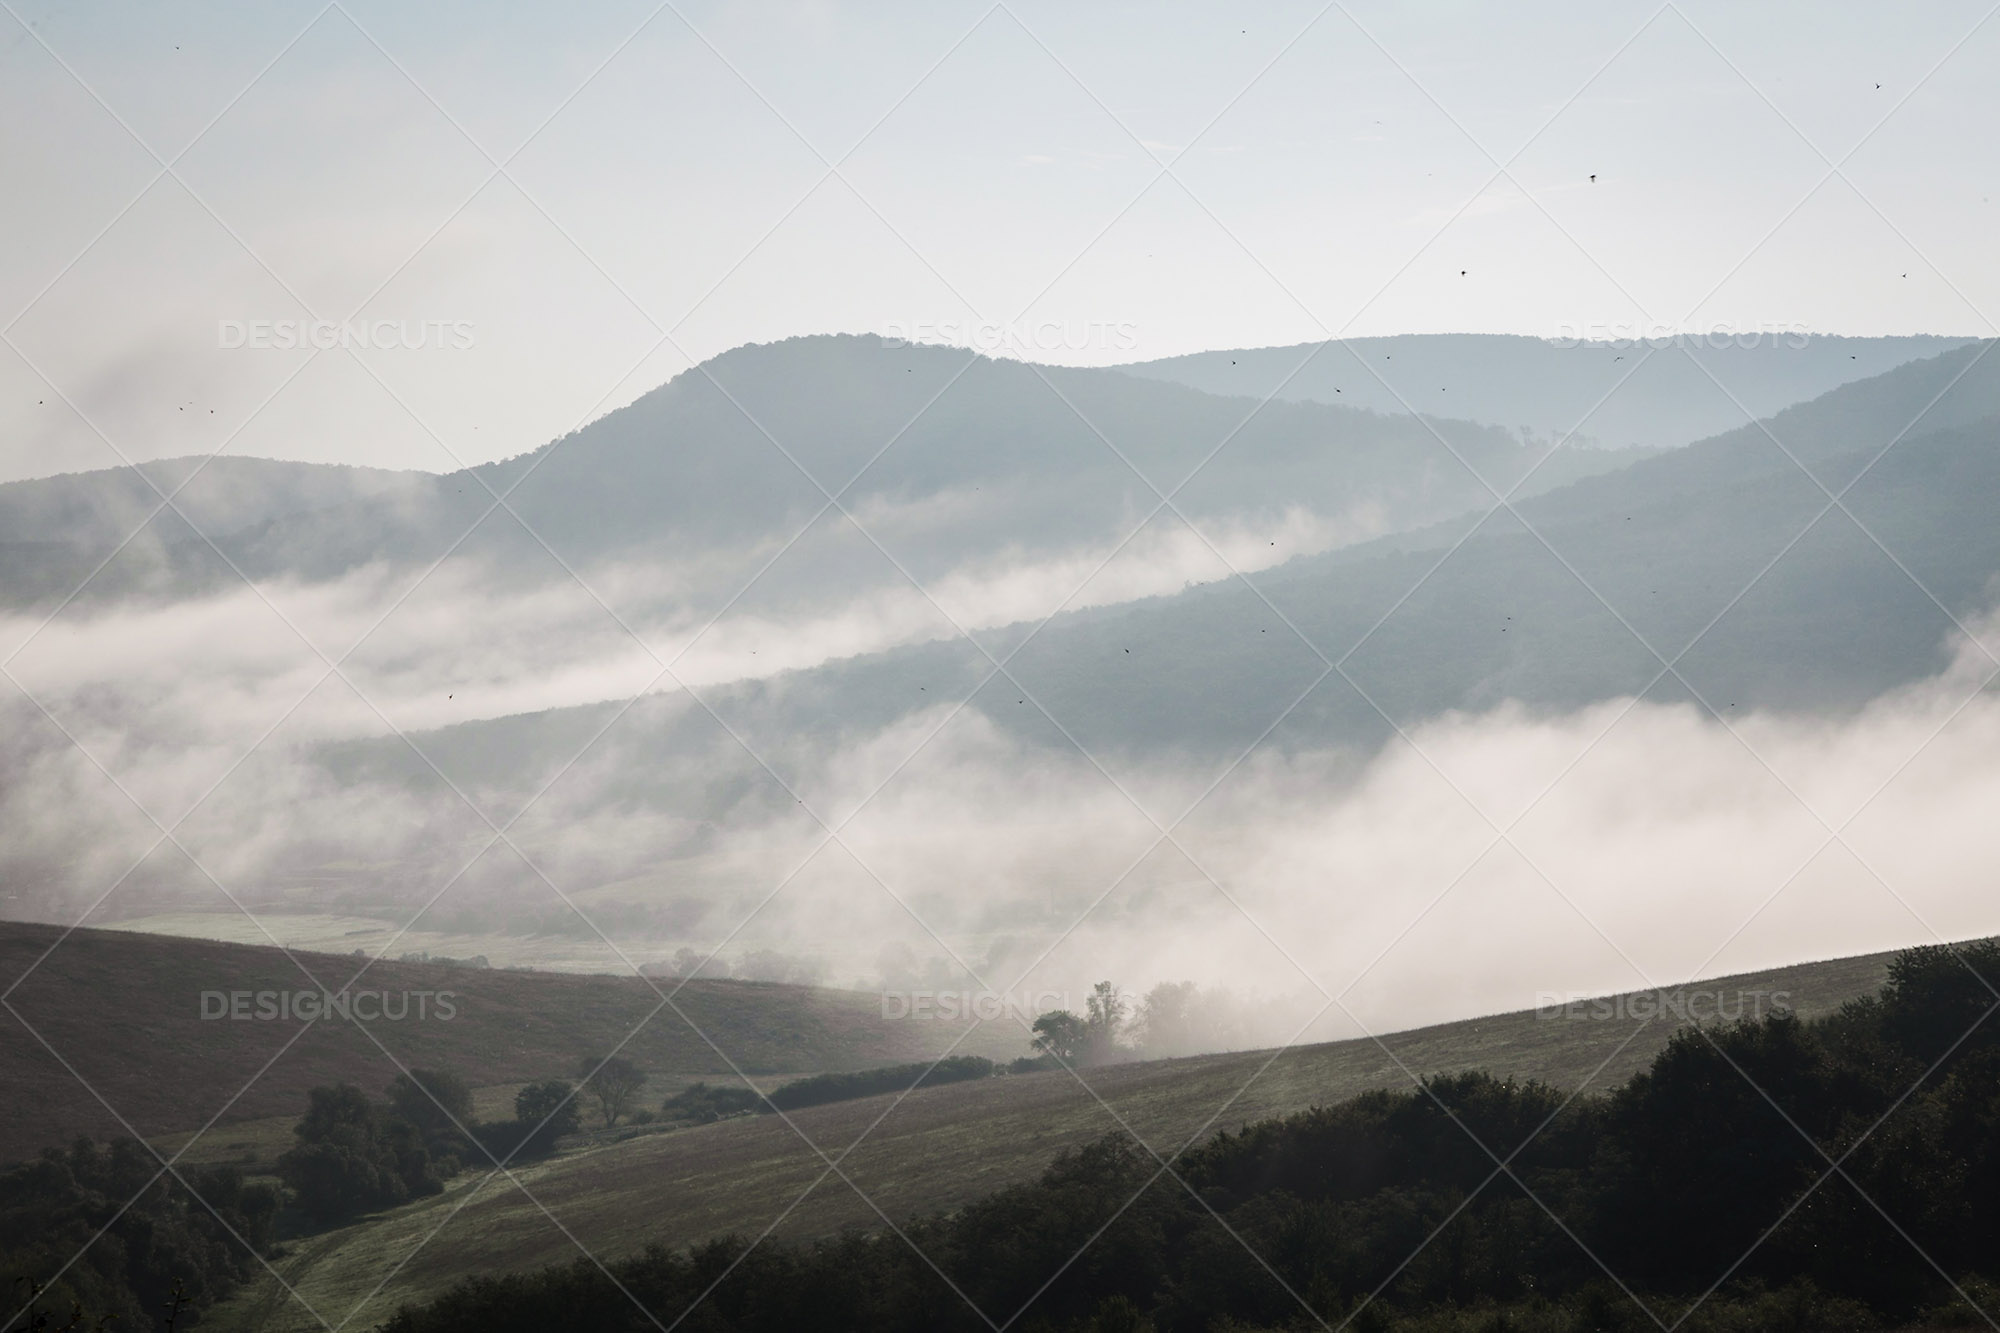 Mist Clearing In The Valleys Around Holloko In Hungary 8